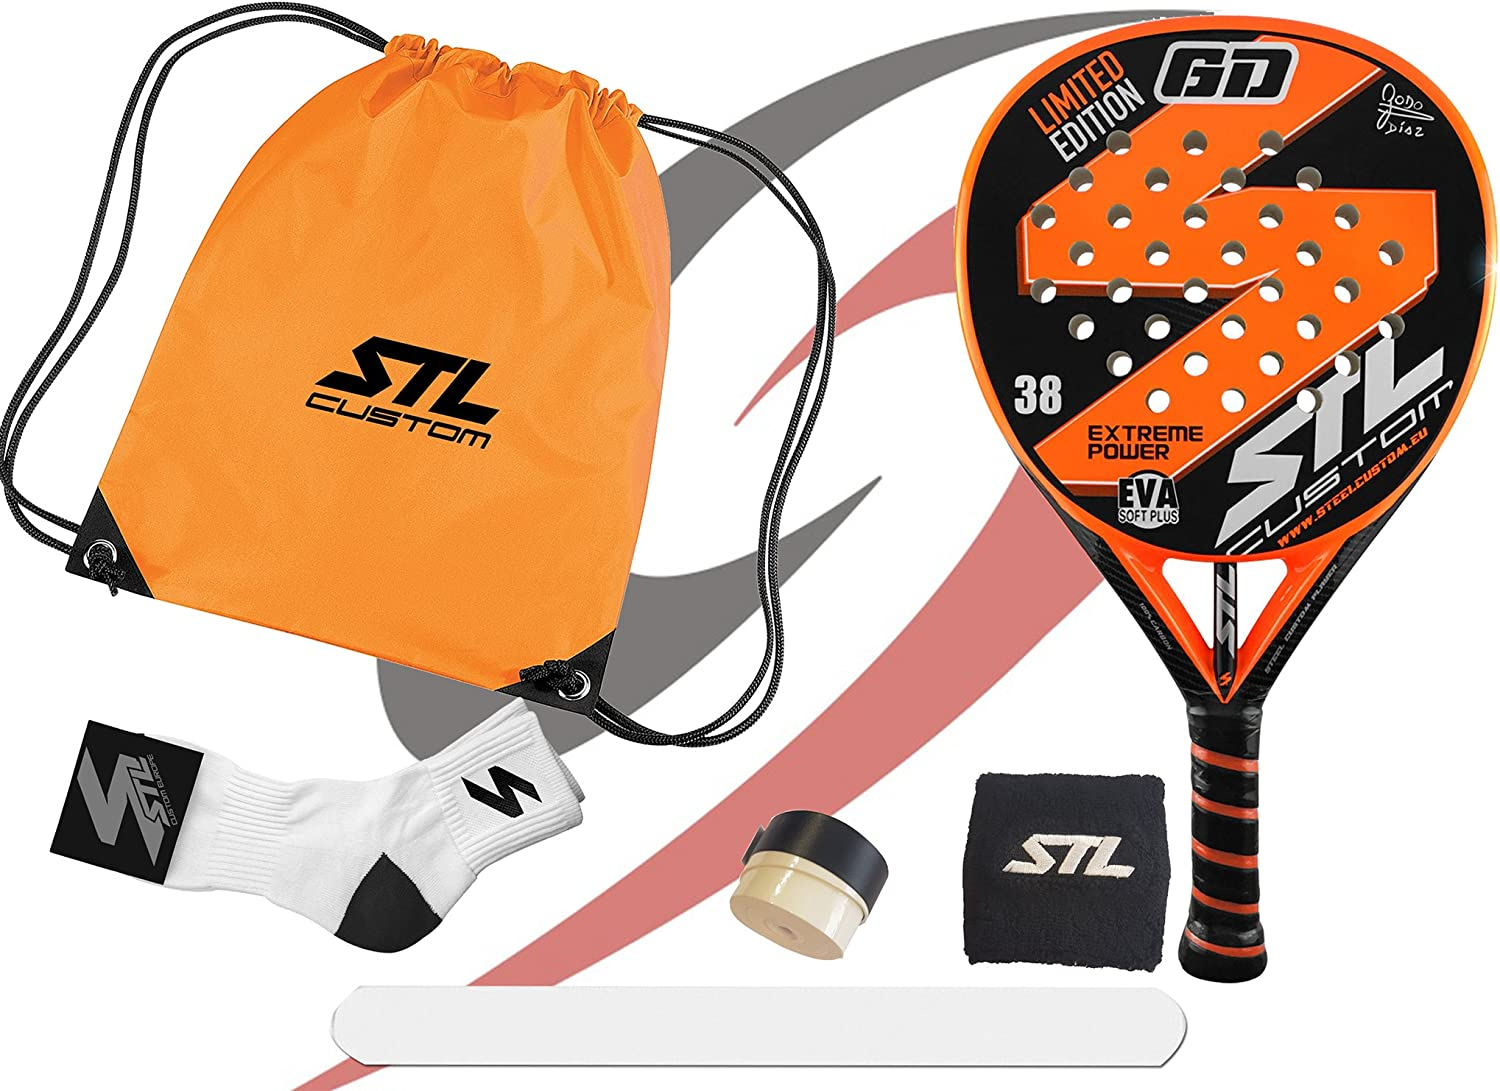 Pack de Padel Steel Custom GD Edición Limitada Eva Soft Plus ...